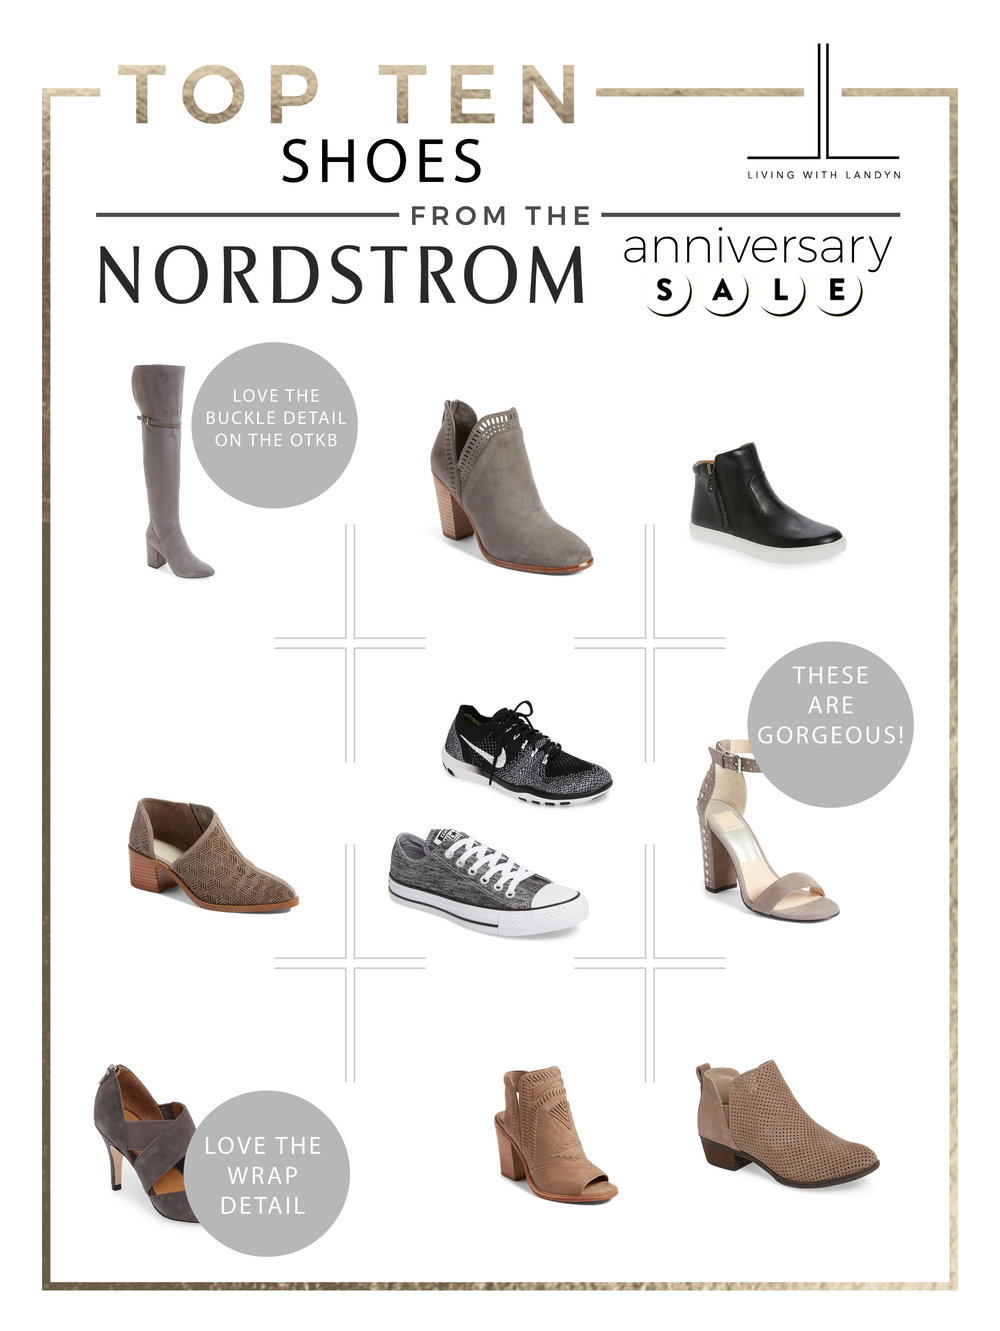 TOP 10 SHOES FROM THE NORDSTROM ANNIVERSARY SALE